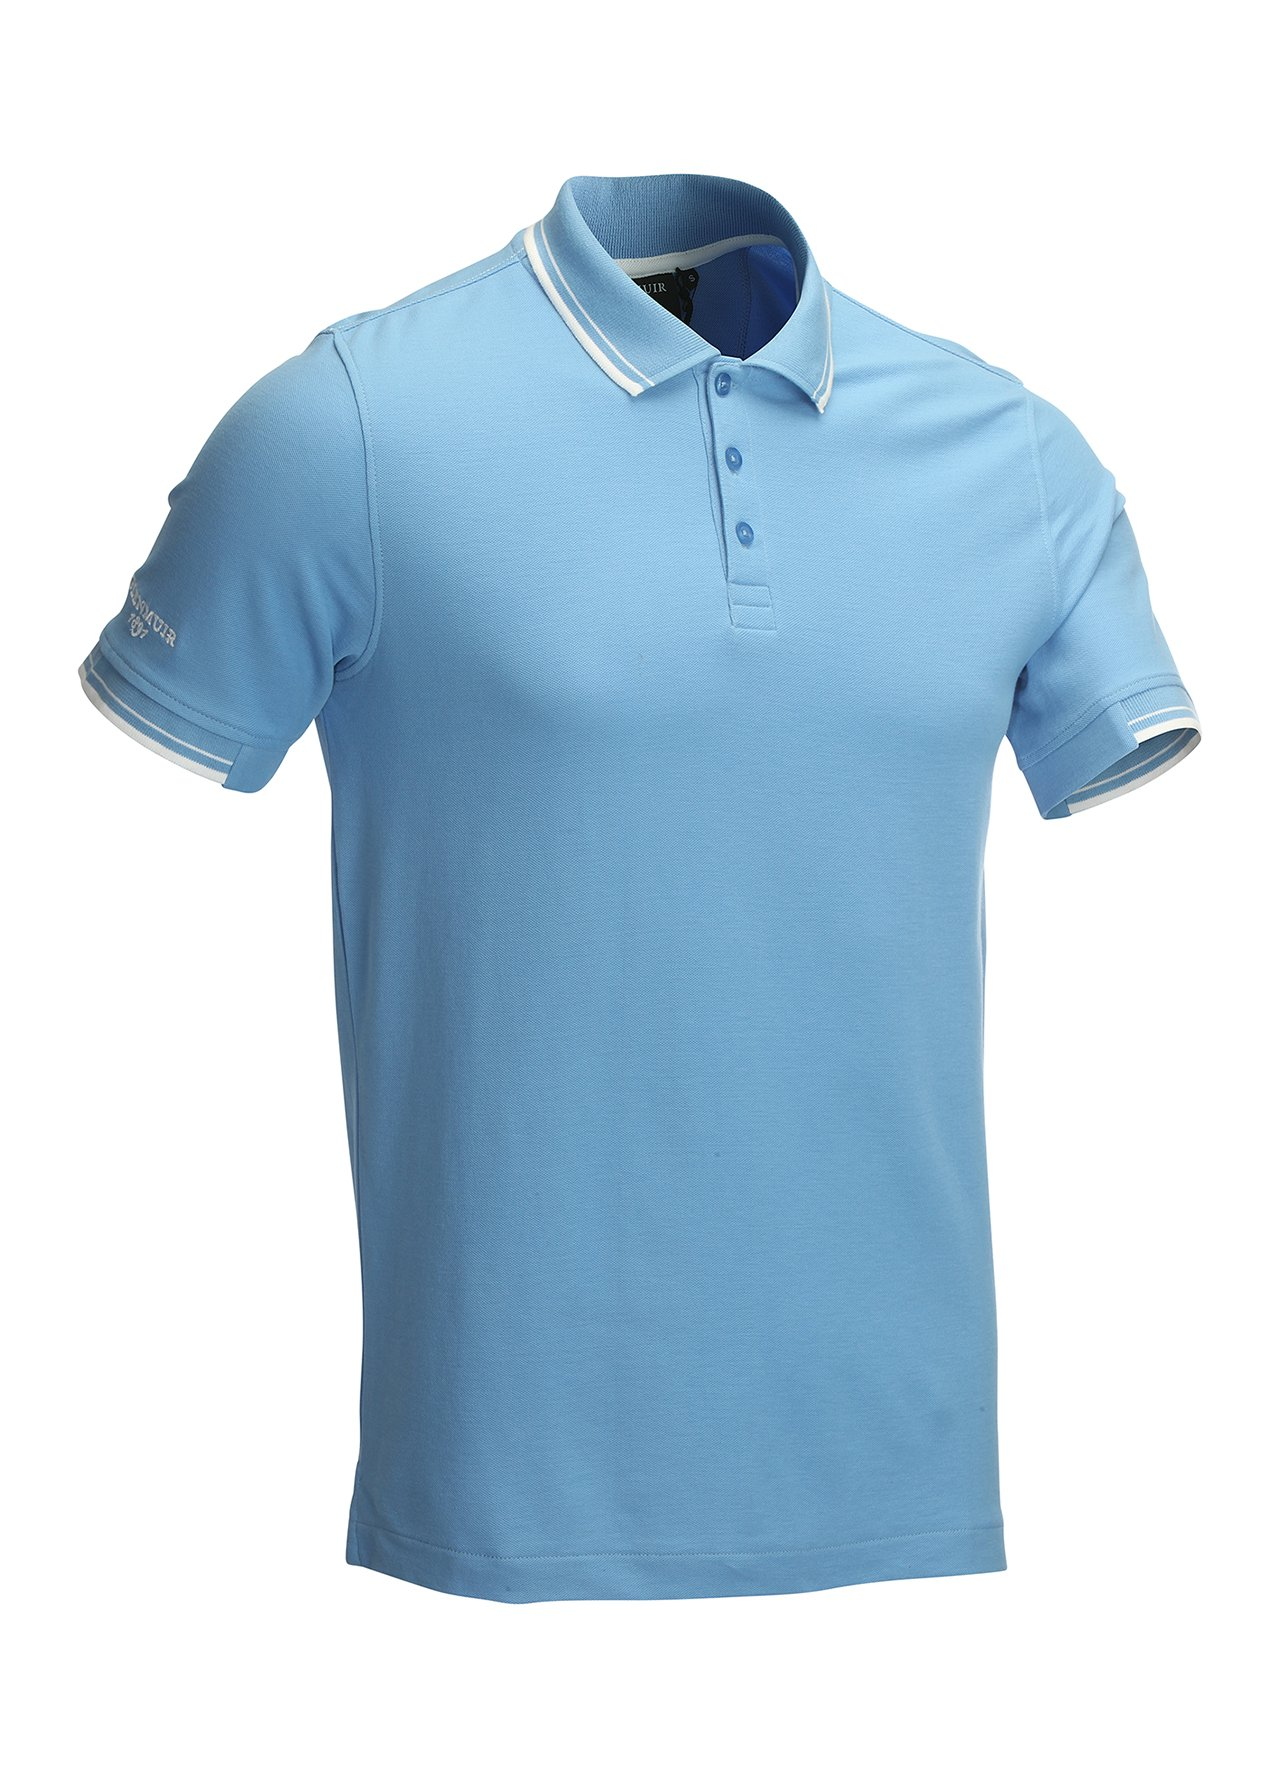 Glenmuir Mens Tipped Golf Polo Shirt Sports Top 75 Off